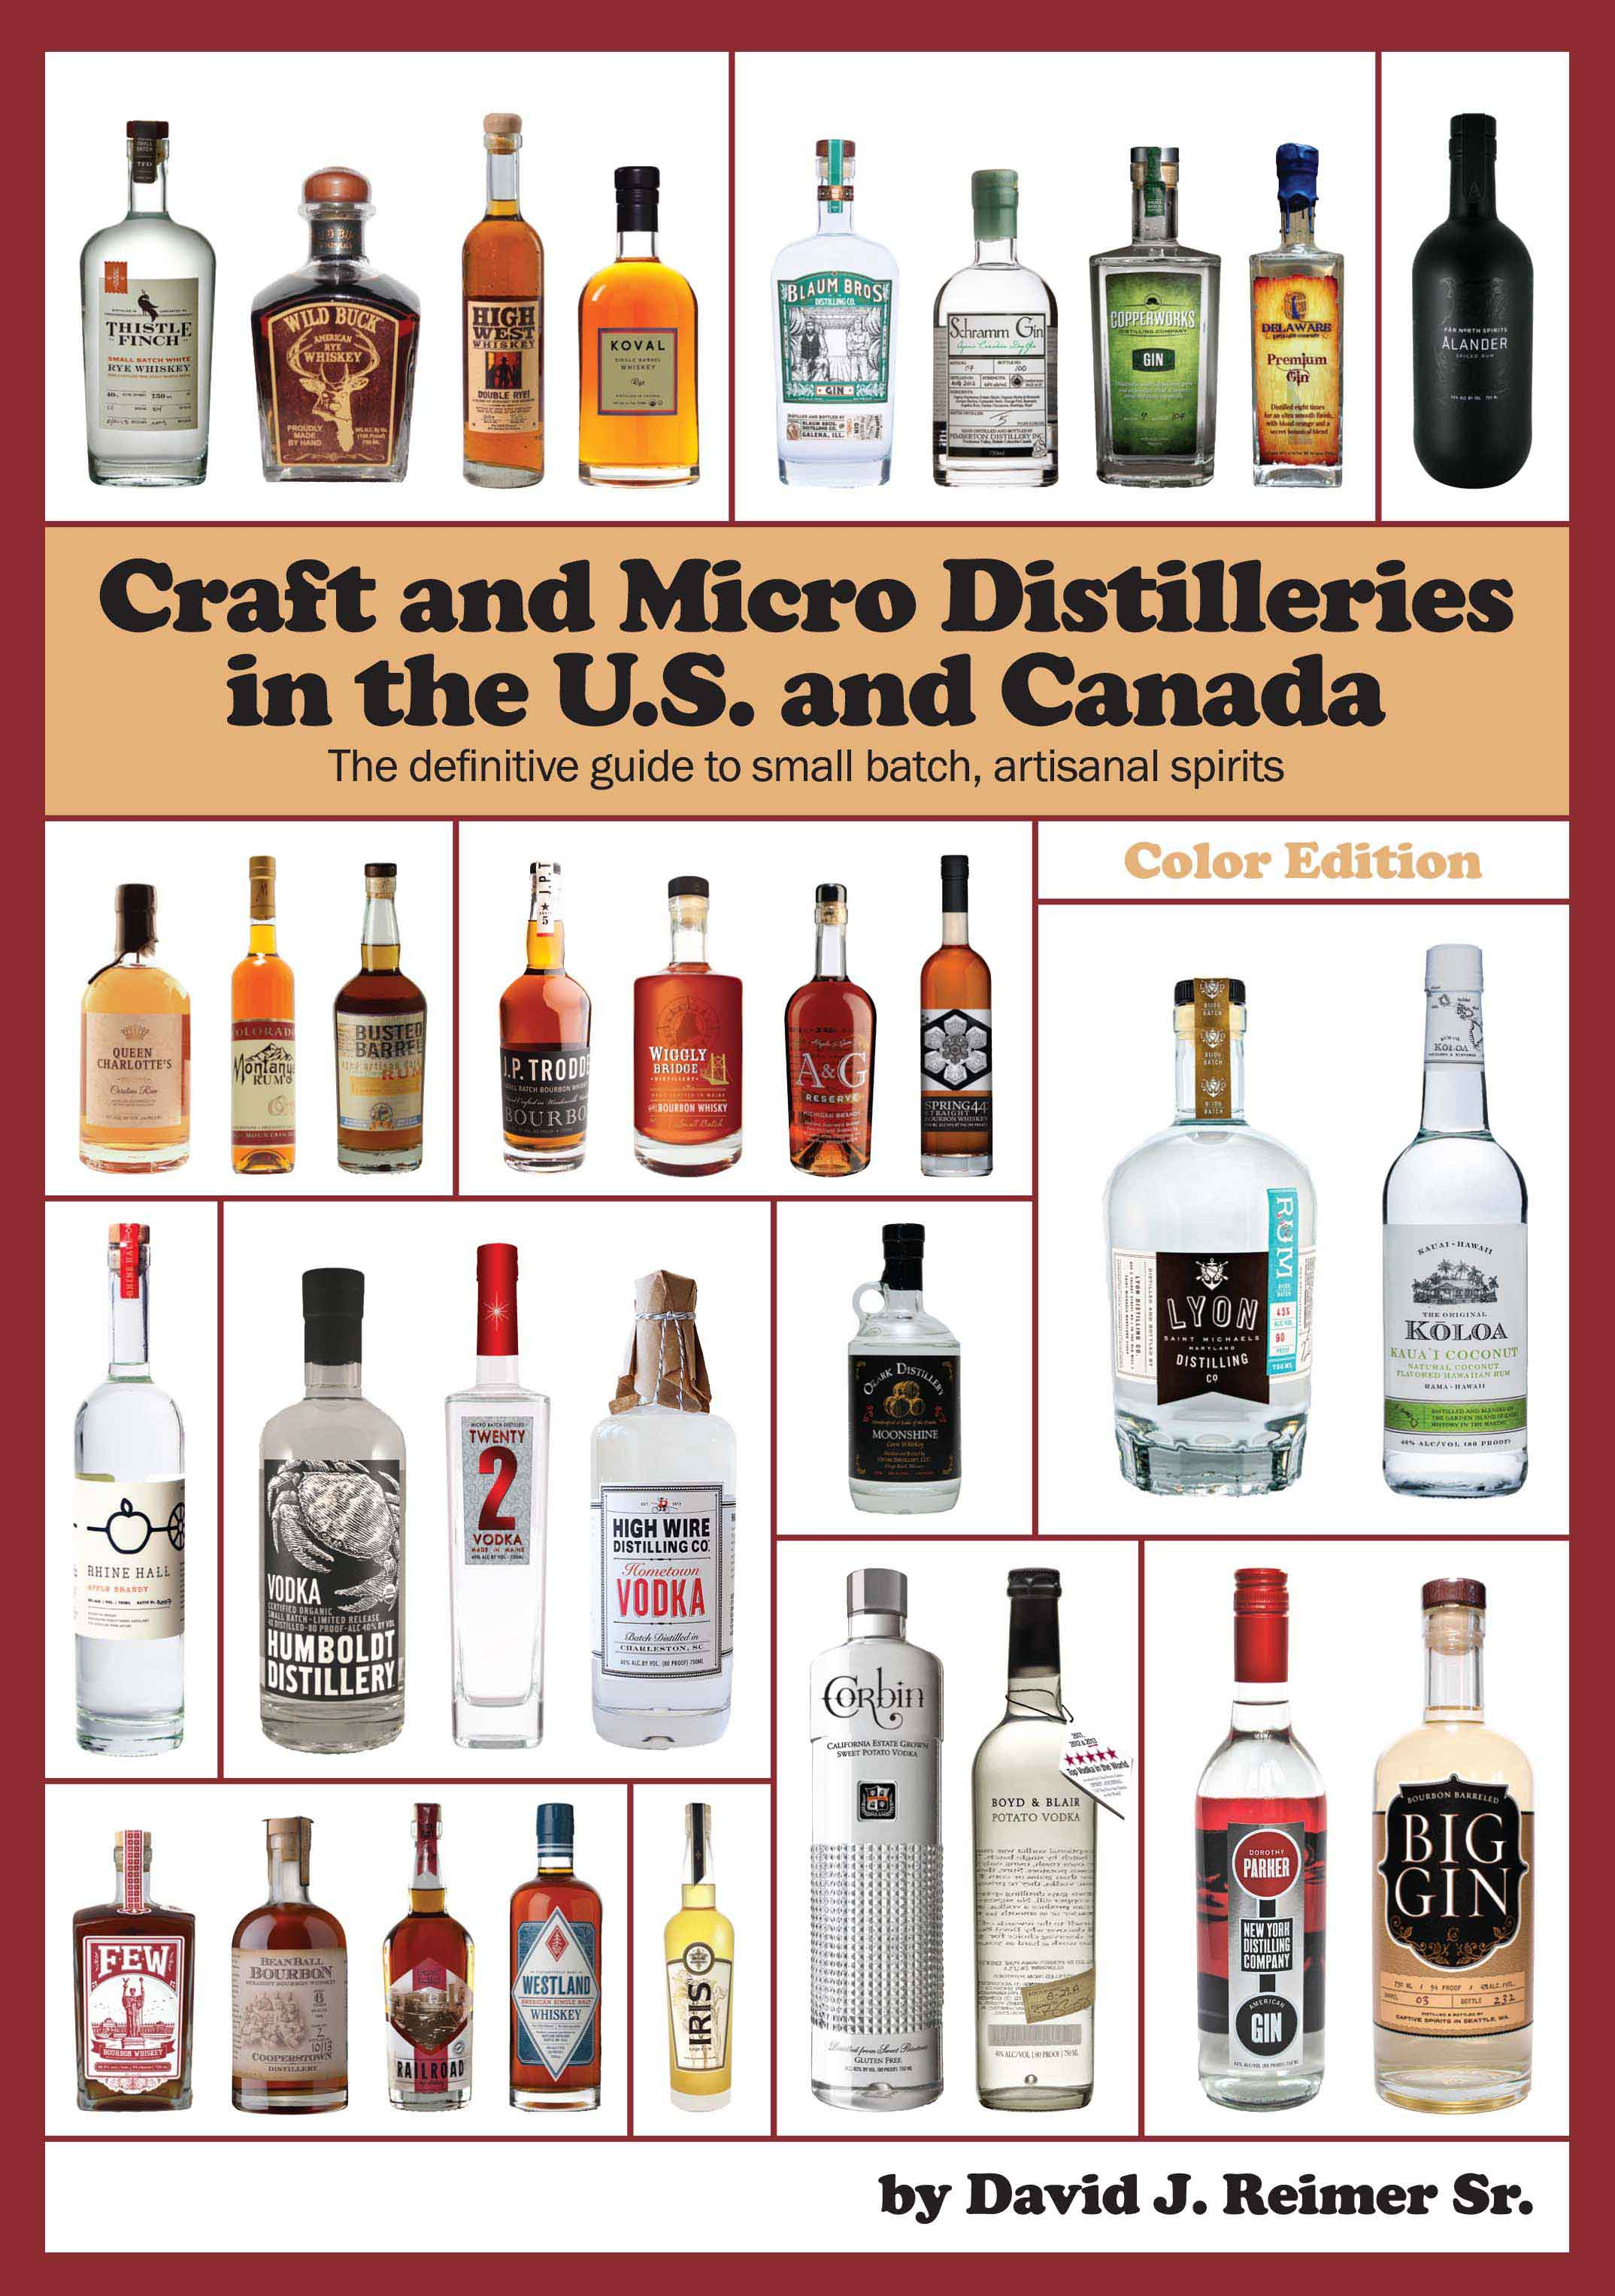 Cover of book Craft and Micro Distilleries in the U.S. and Canada